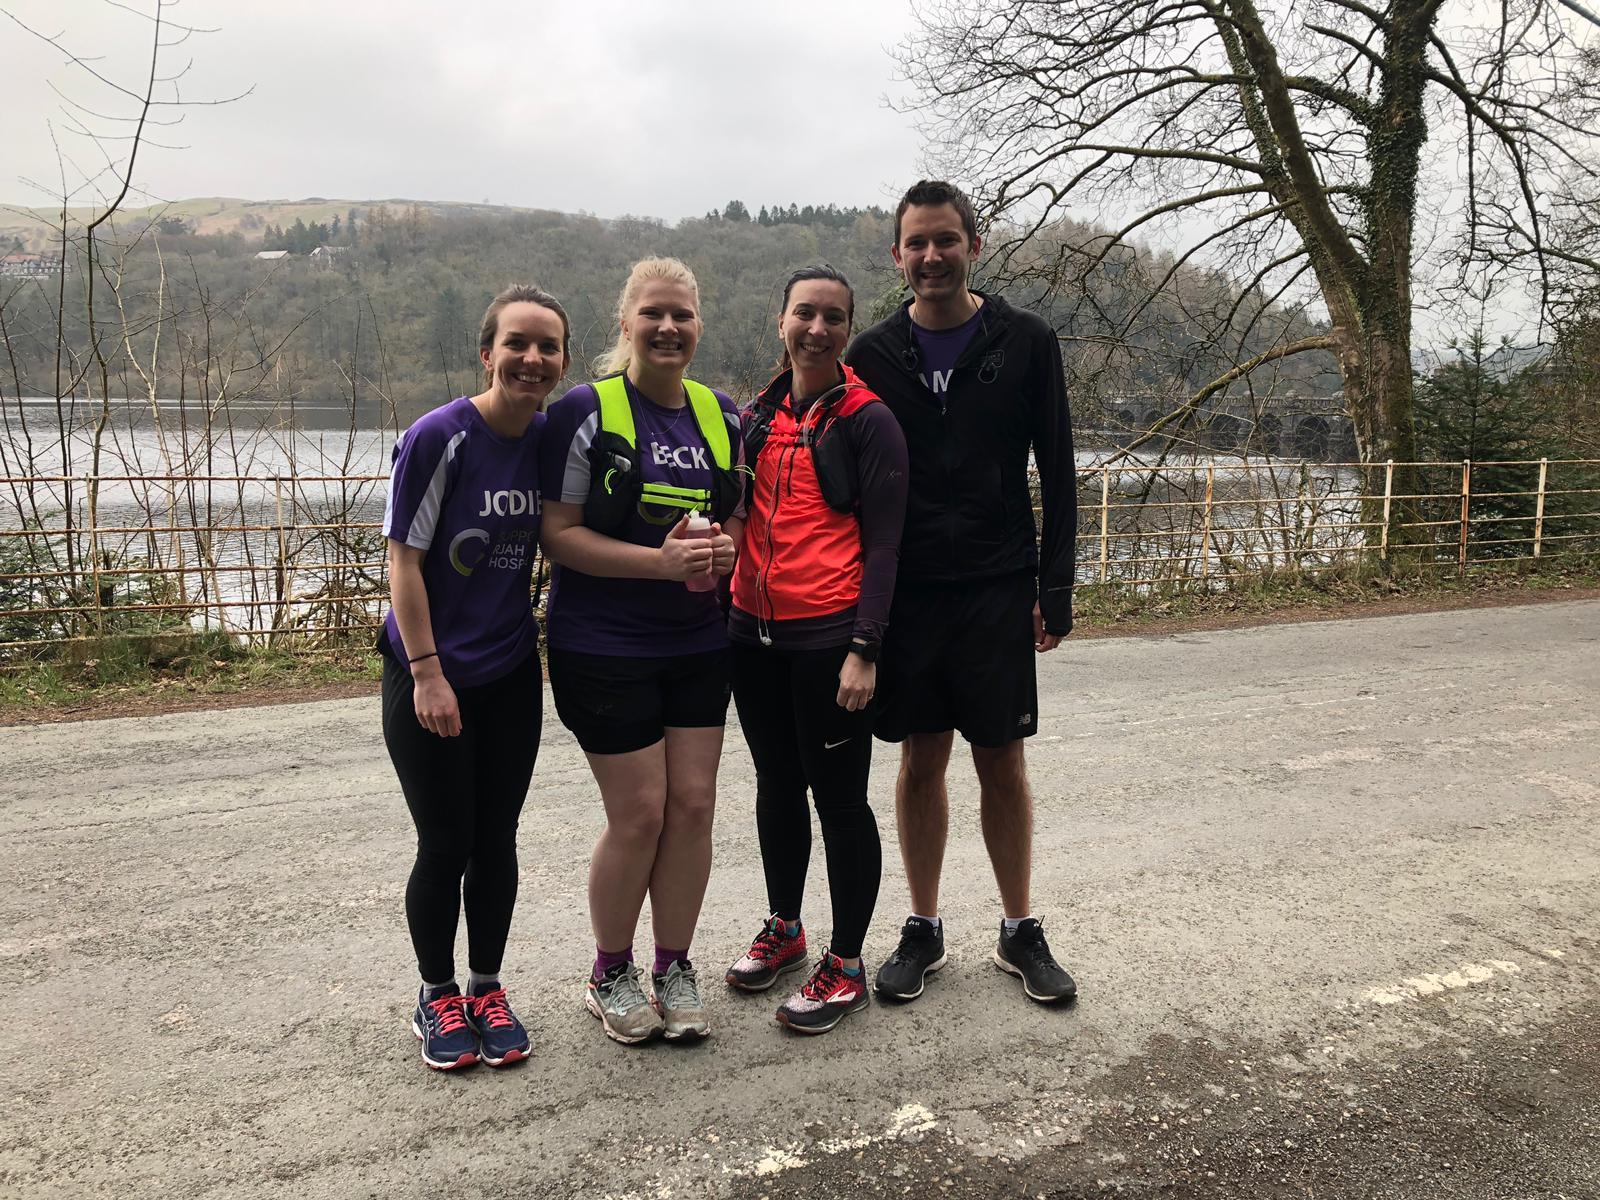 Jodie Rogers along with members of the group taking on the marathon Becky Jones, Rebecca Thorpe and James Jones